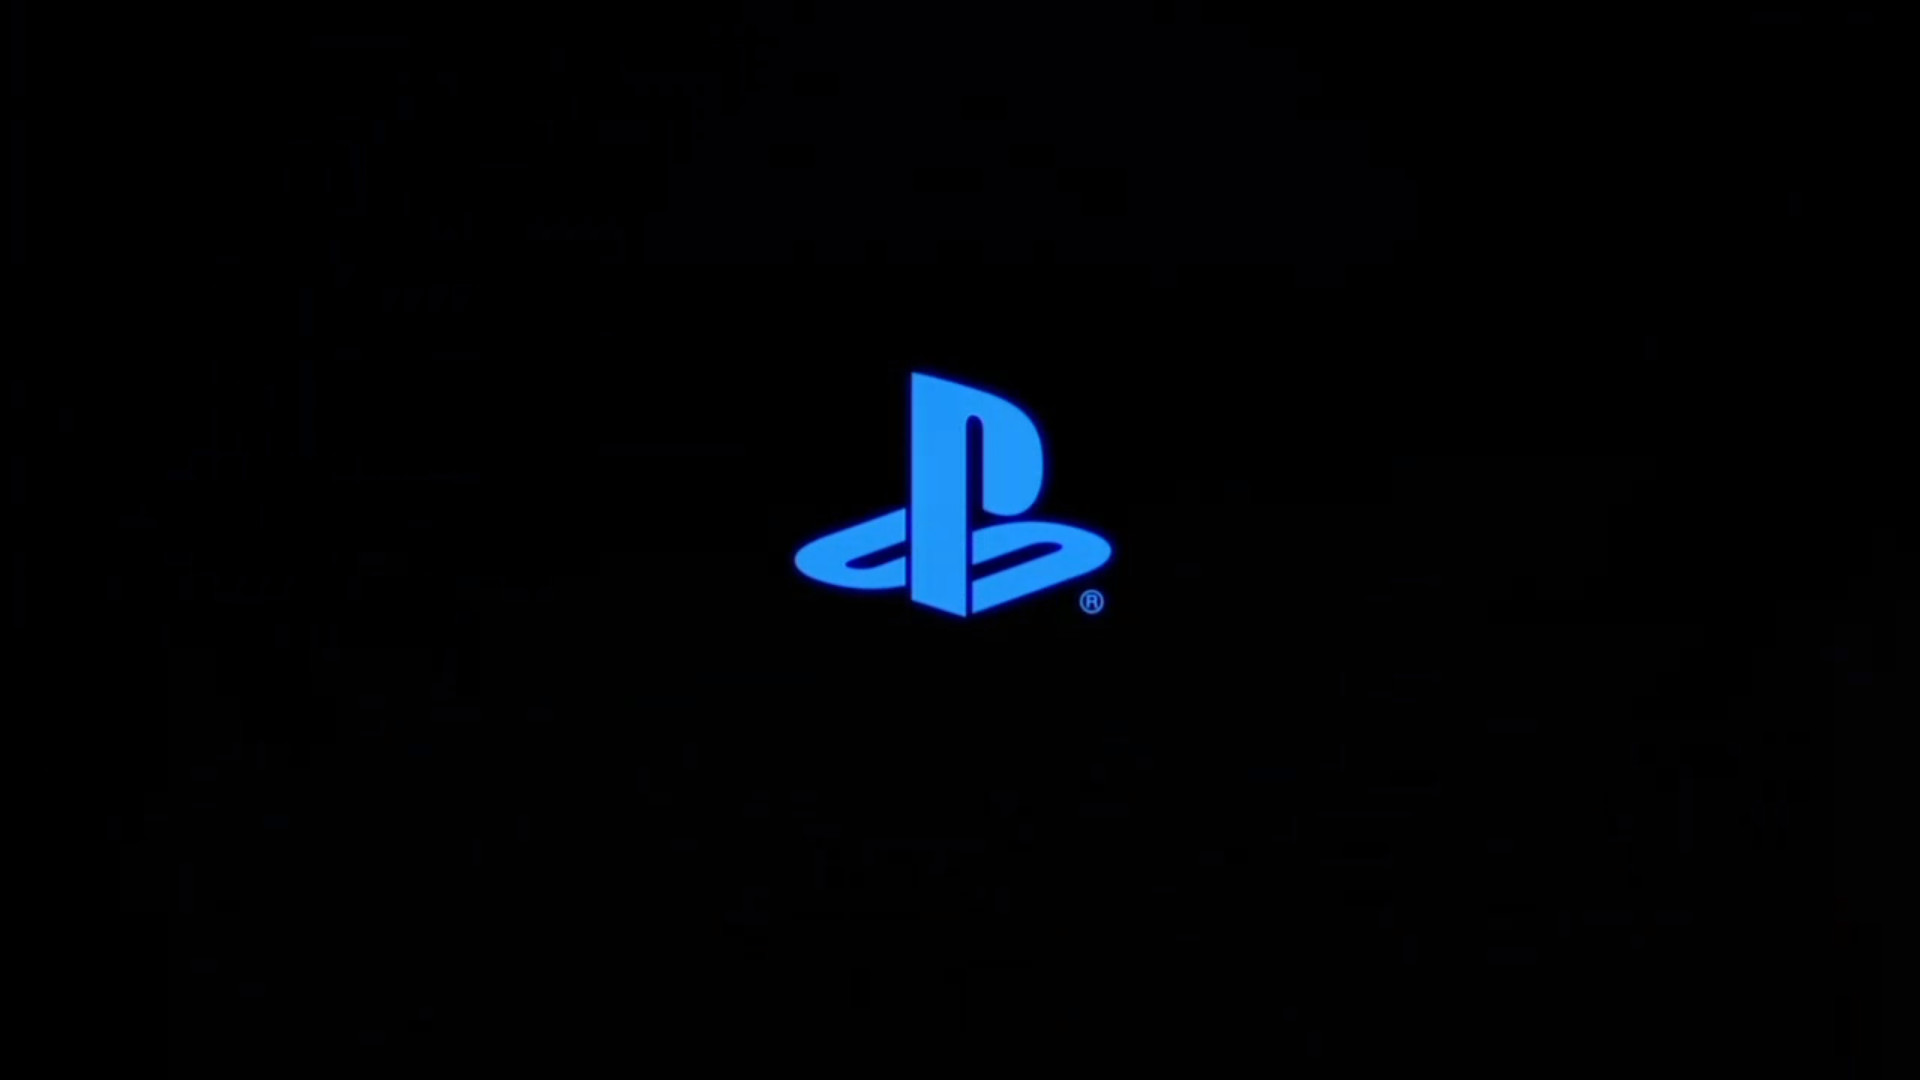 Ps4 Wallpapers 79 Images